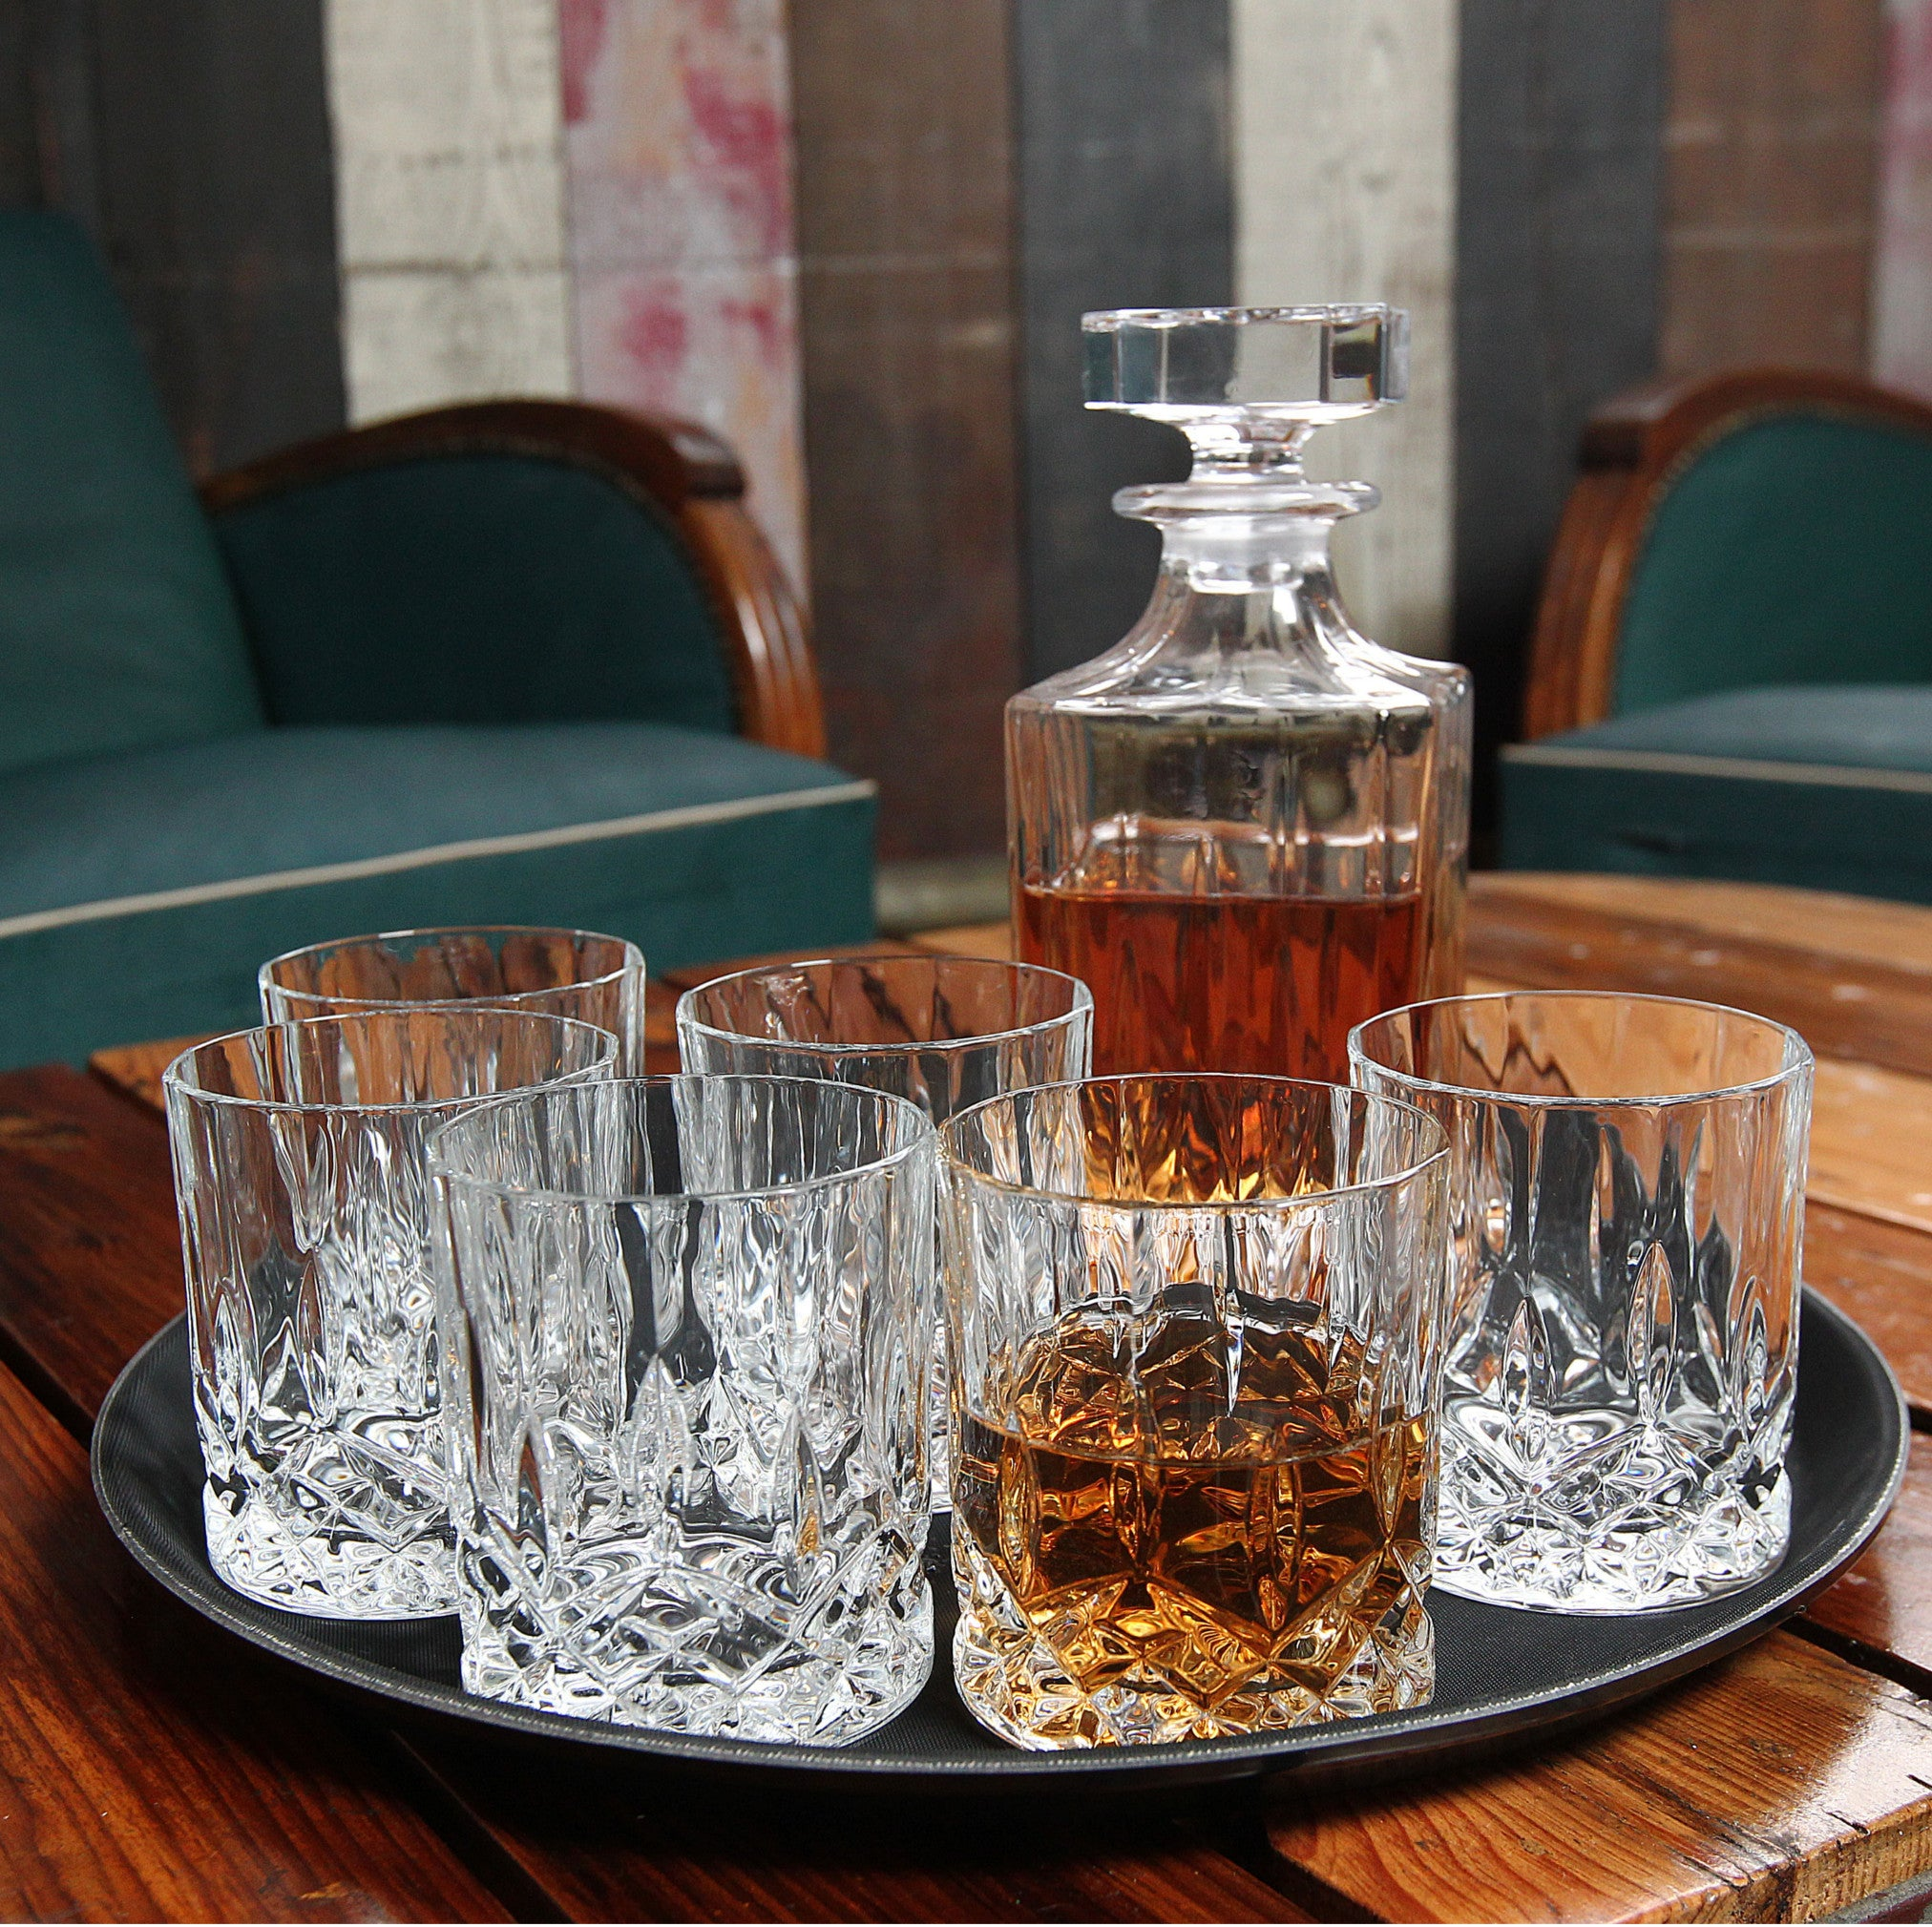 Strange 7Pcs Temple Bar Whisky Spirit Decanter Set Tray Included Interior Design Ideas Gentotryabchikinfo